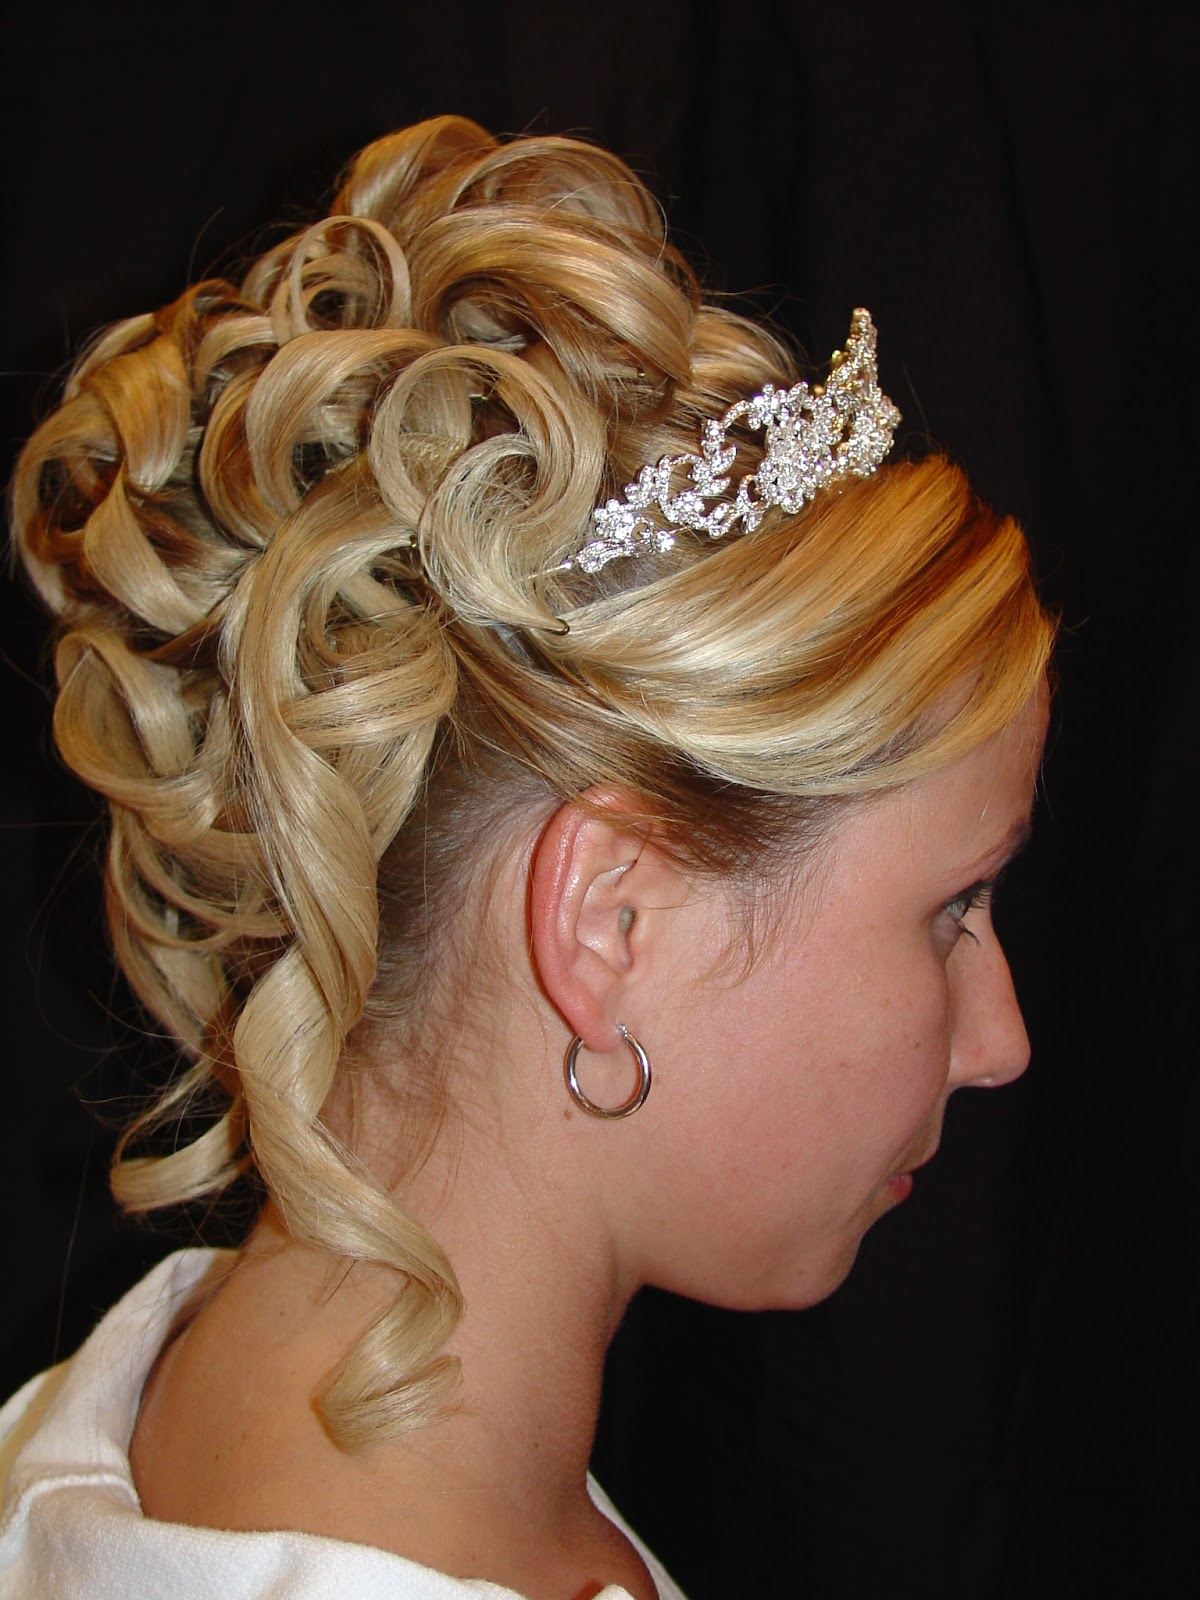 Hairstyles for Women: Cute Prom Hairstyles For Women 2012